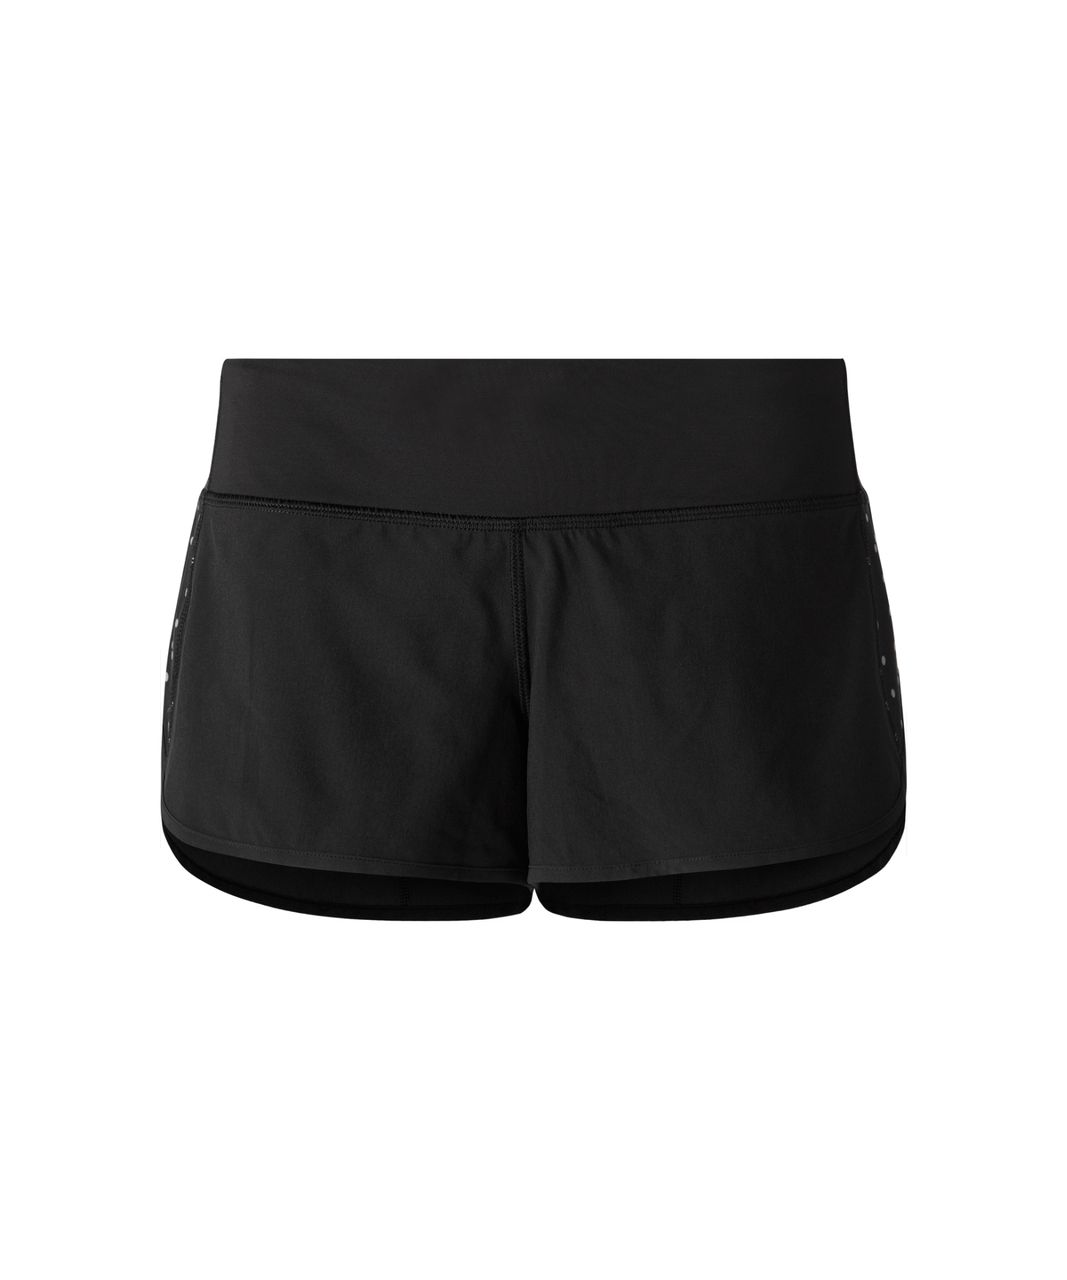 Lululemon Speed Short - Black (Reflective Dots)